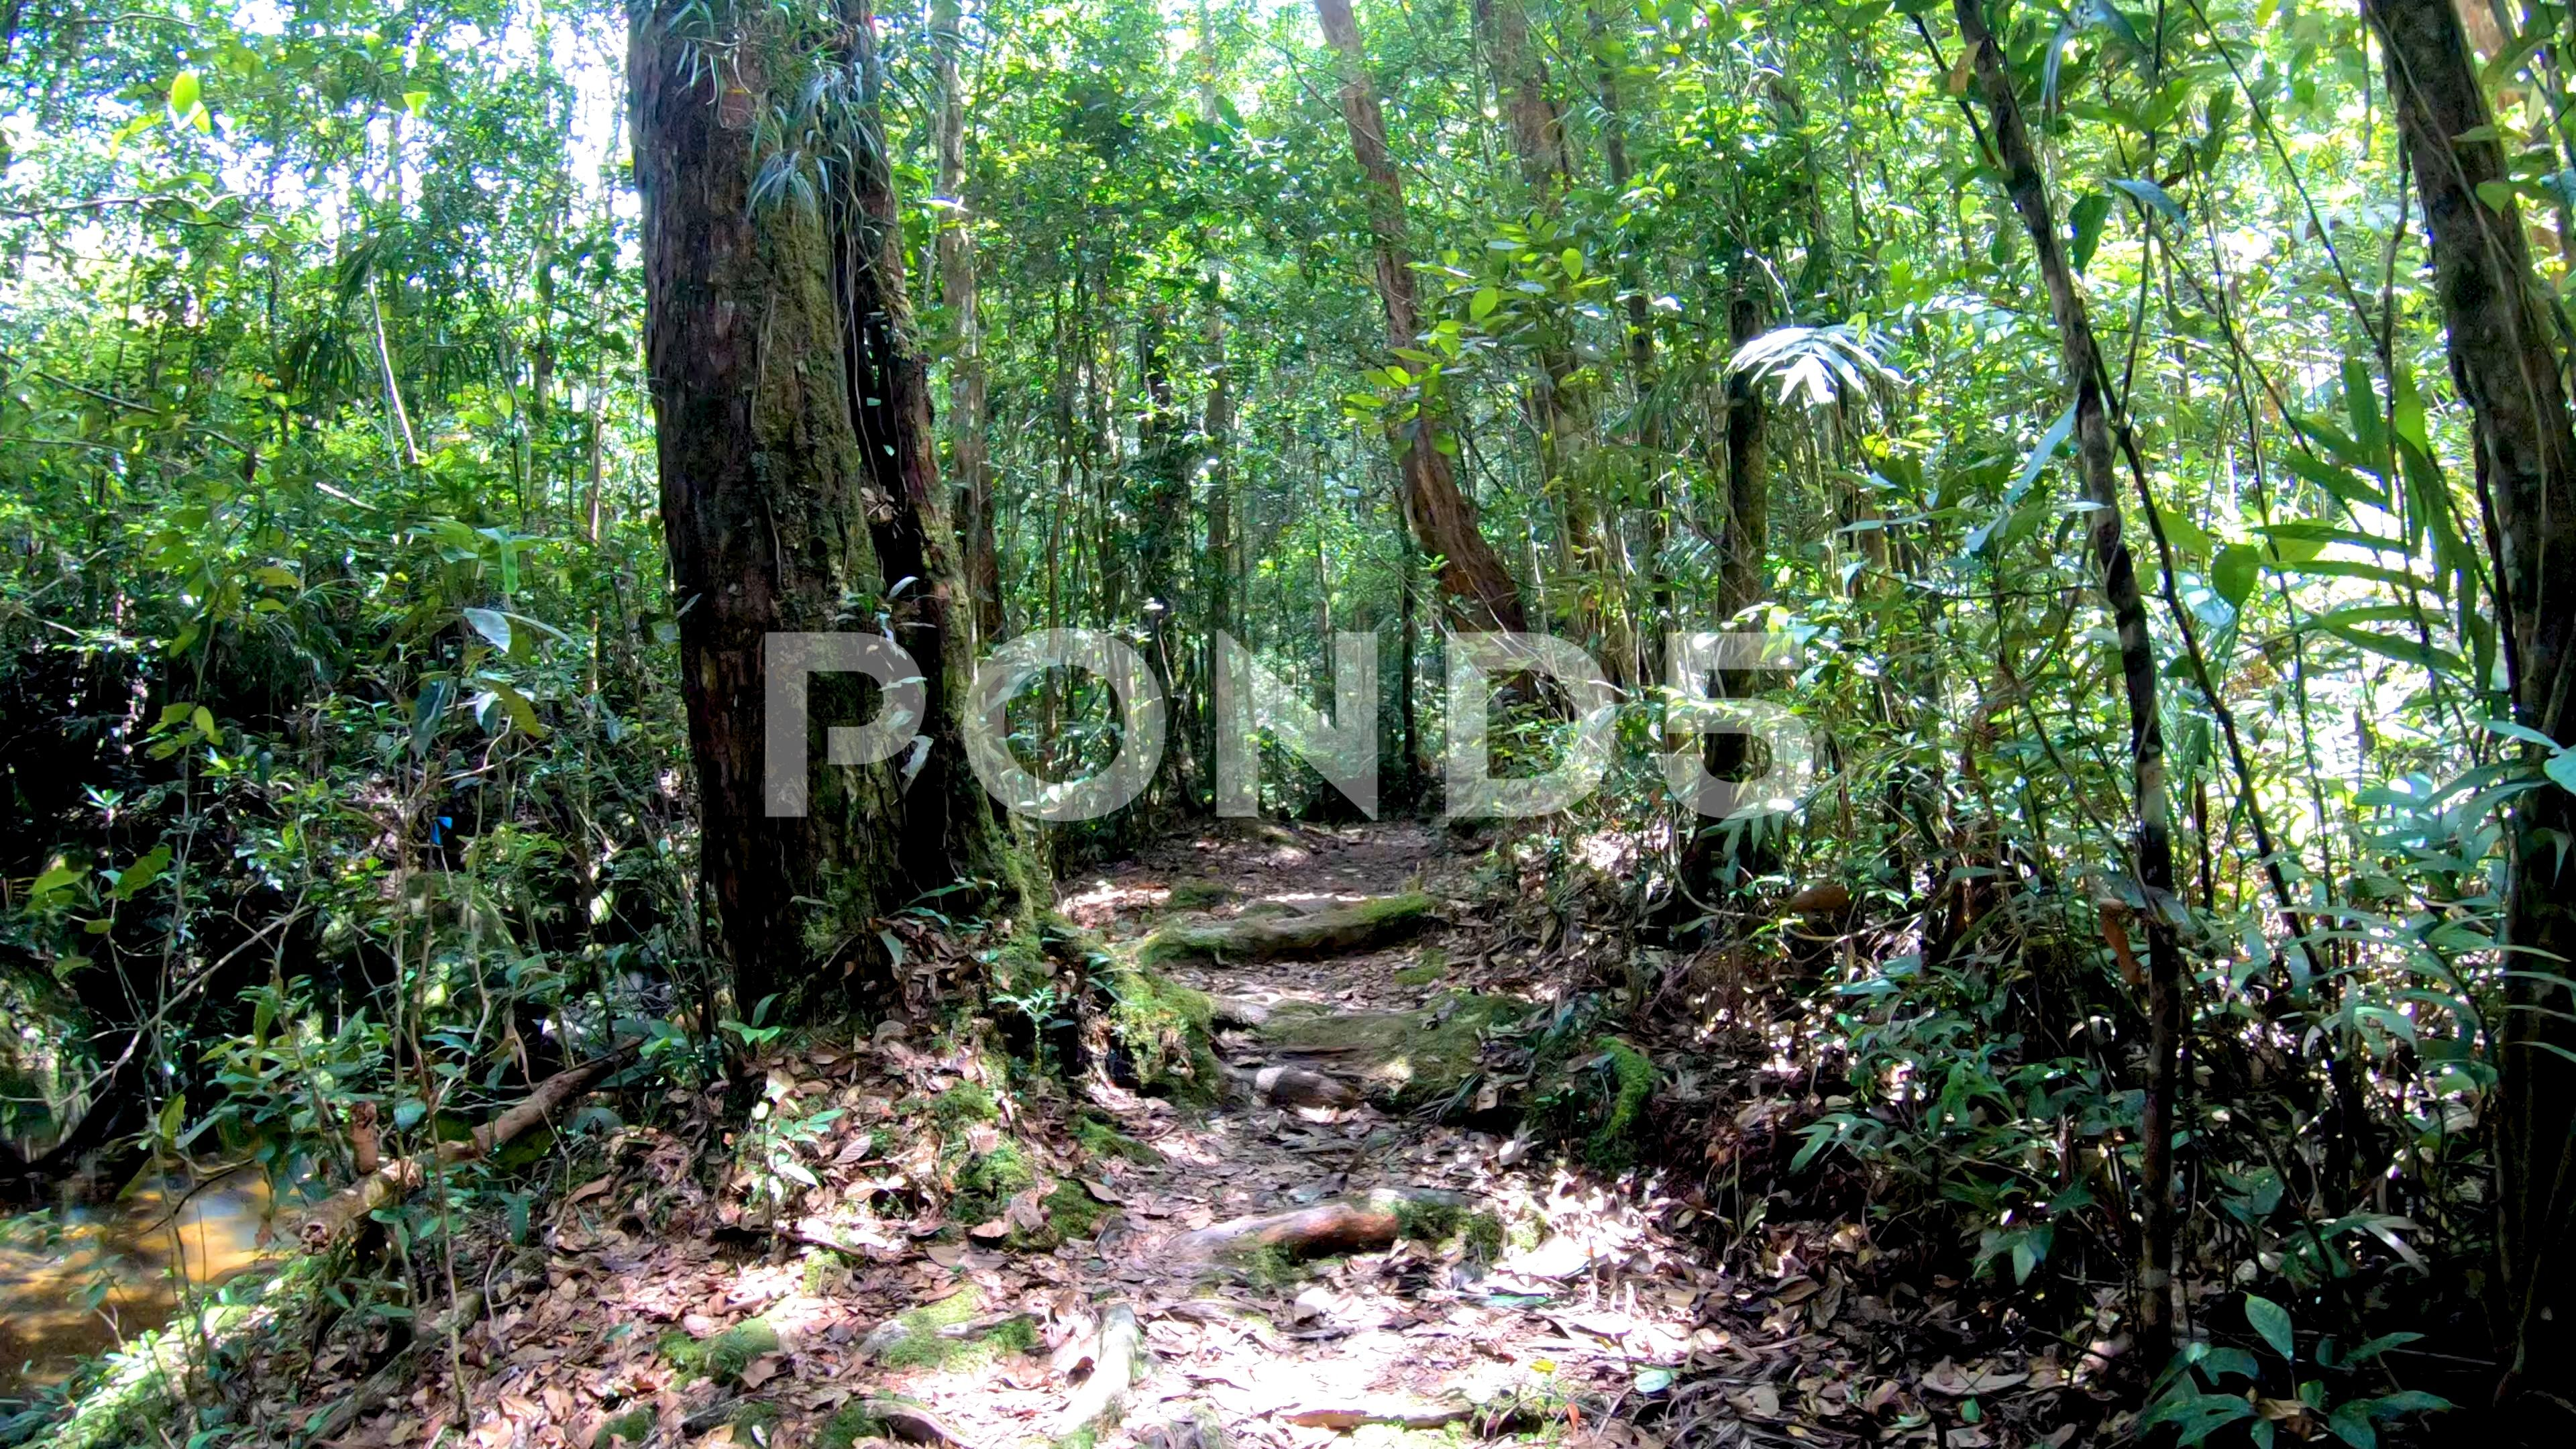 Nature Footage Of Walk Along A Tropical Rainforest Nature Trail Stock Footage Ad Walk Tropical Nature Footage Nature Trail Tropical Rainforest Rainforest